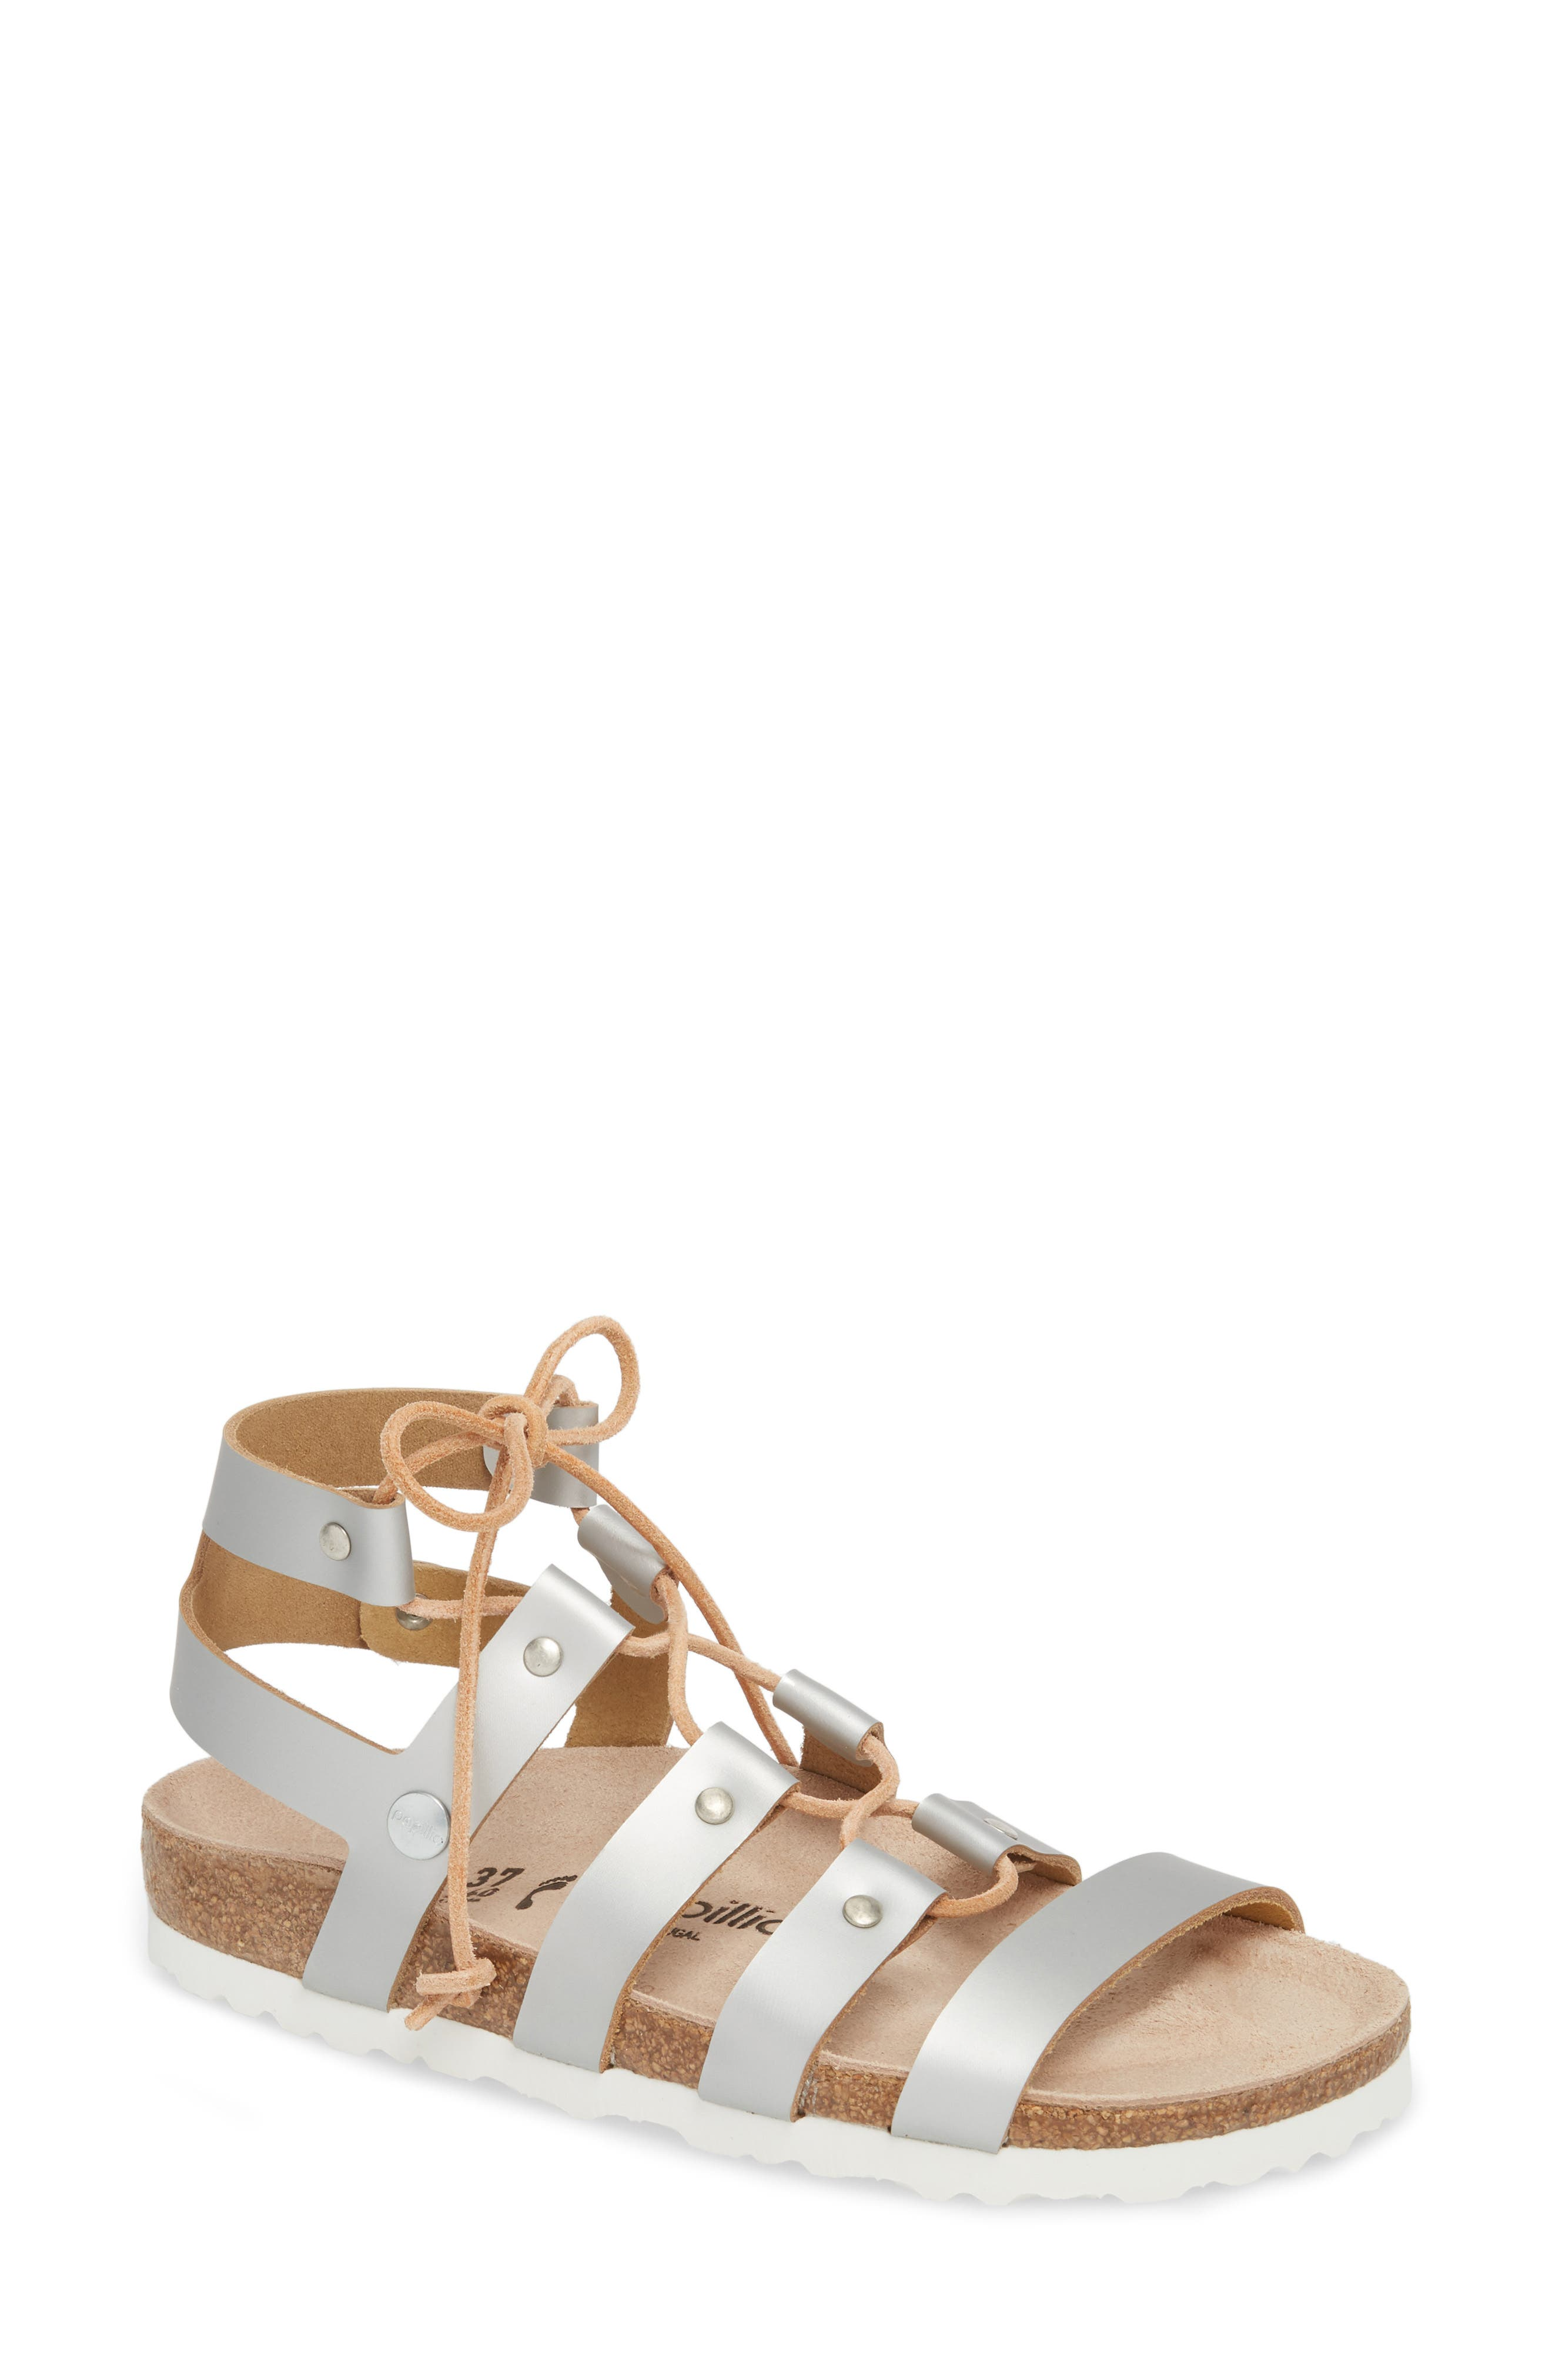 Papillio by Birkenstock Cleo Gladiator Sandal,                         Main,                         color, Frosted Silver Leather